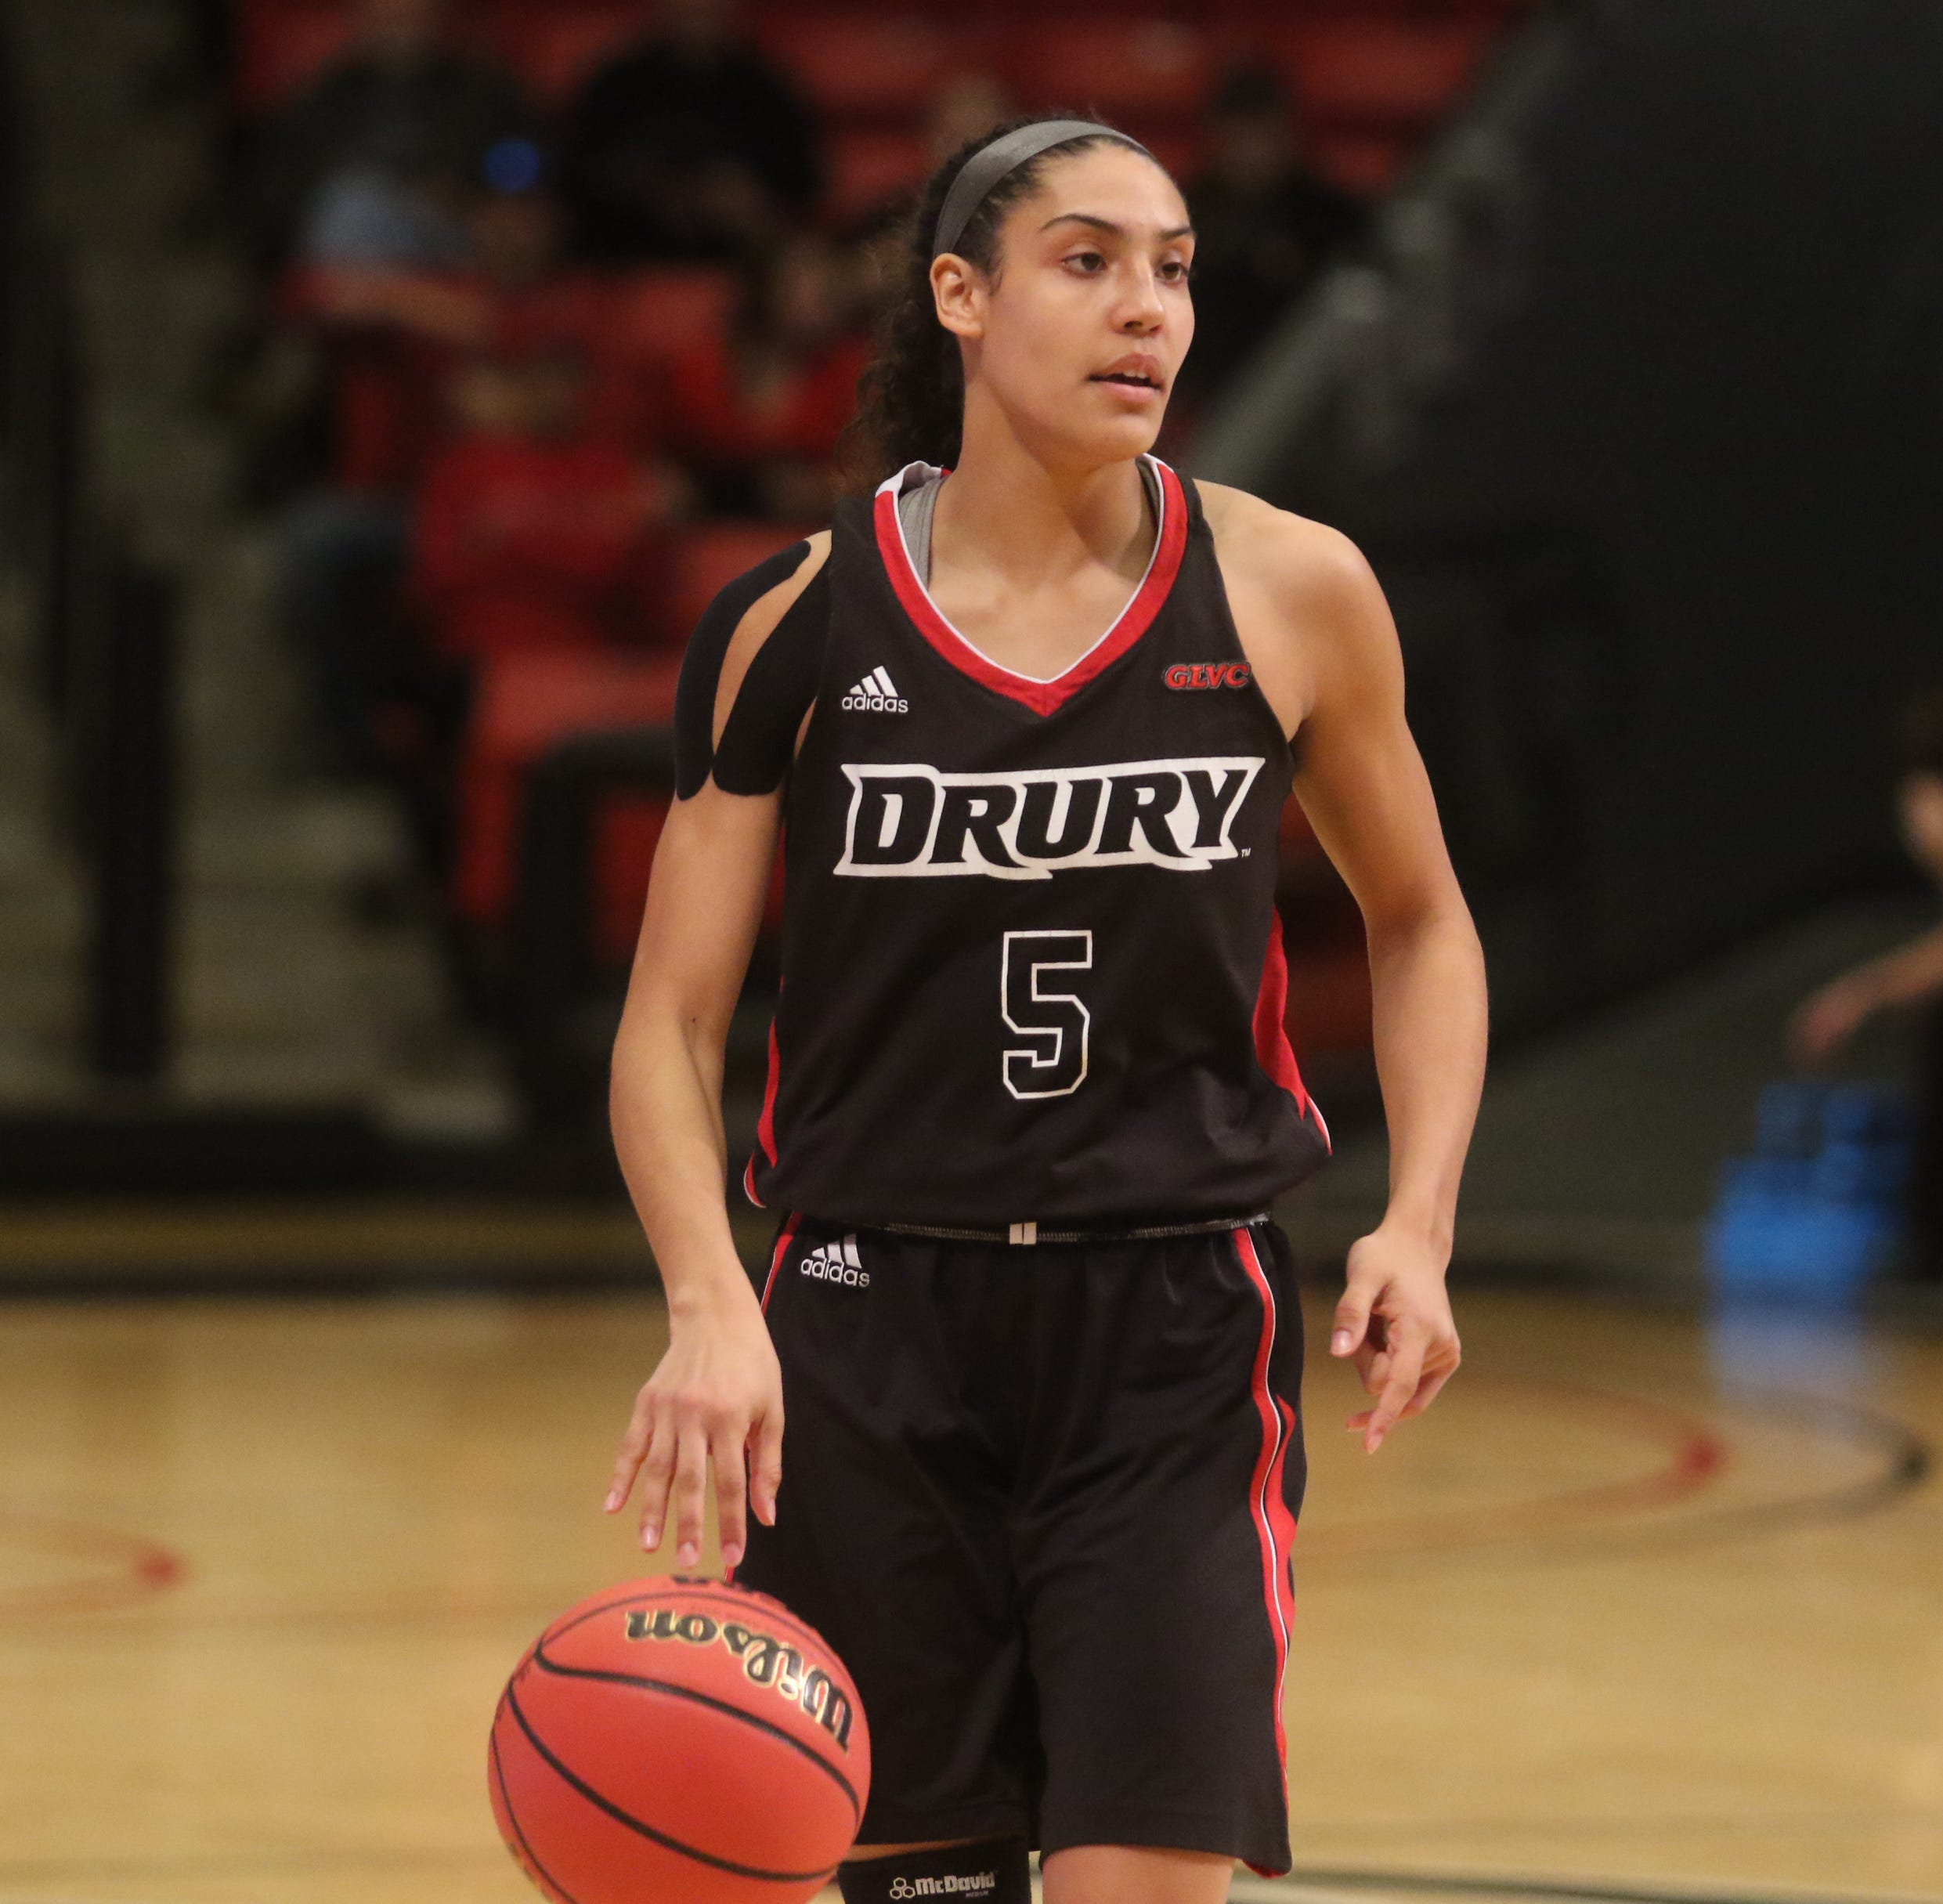 Drury guard drives relentless pressure